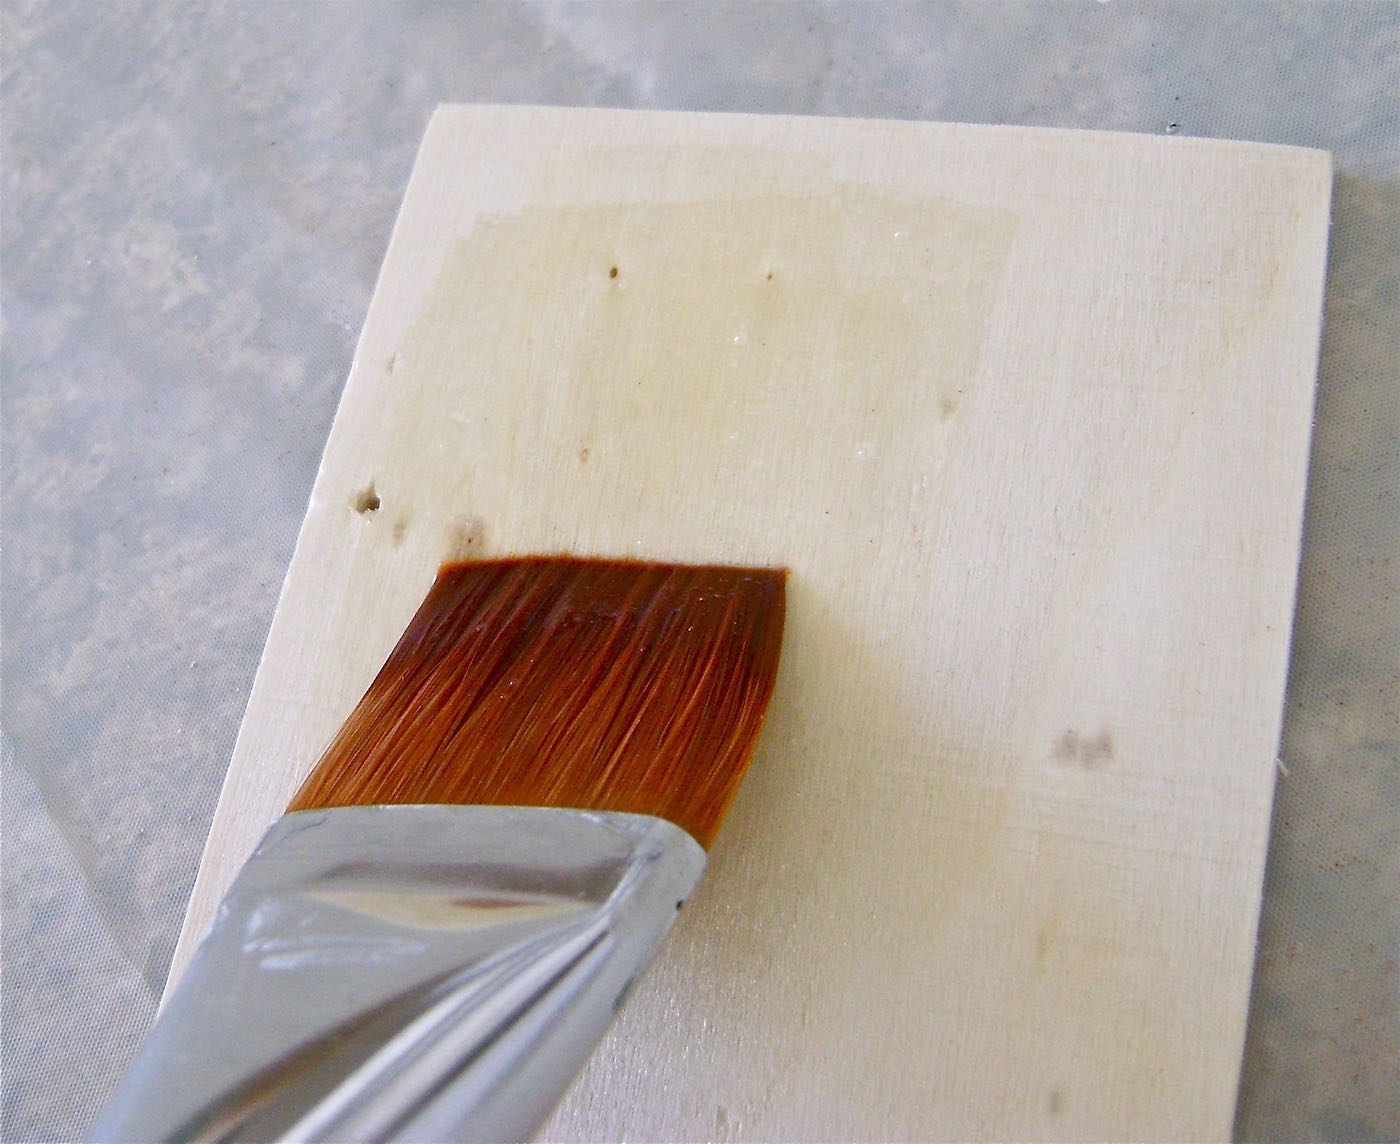 step 2 - With a brush, generously paint the glaze onto the wood piece. Let it dry thoroughly.